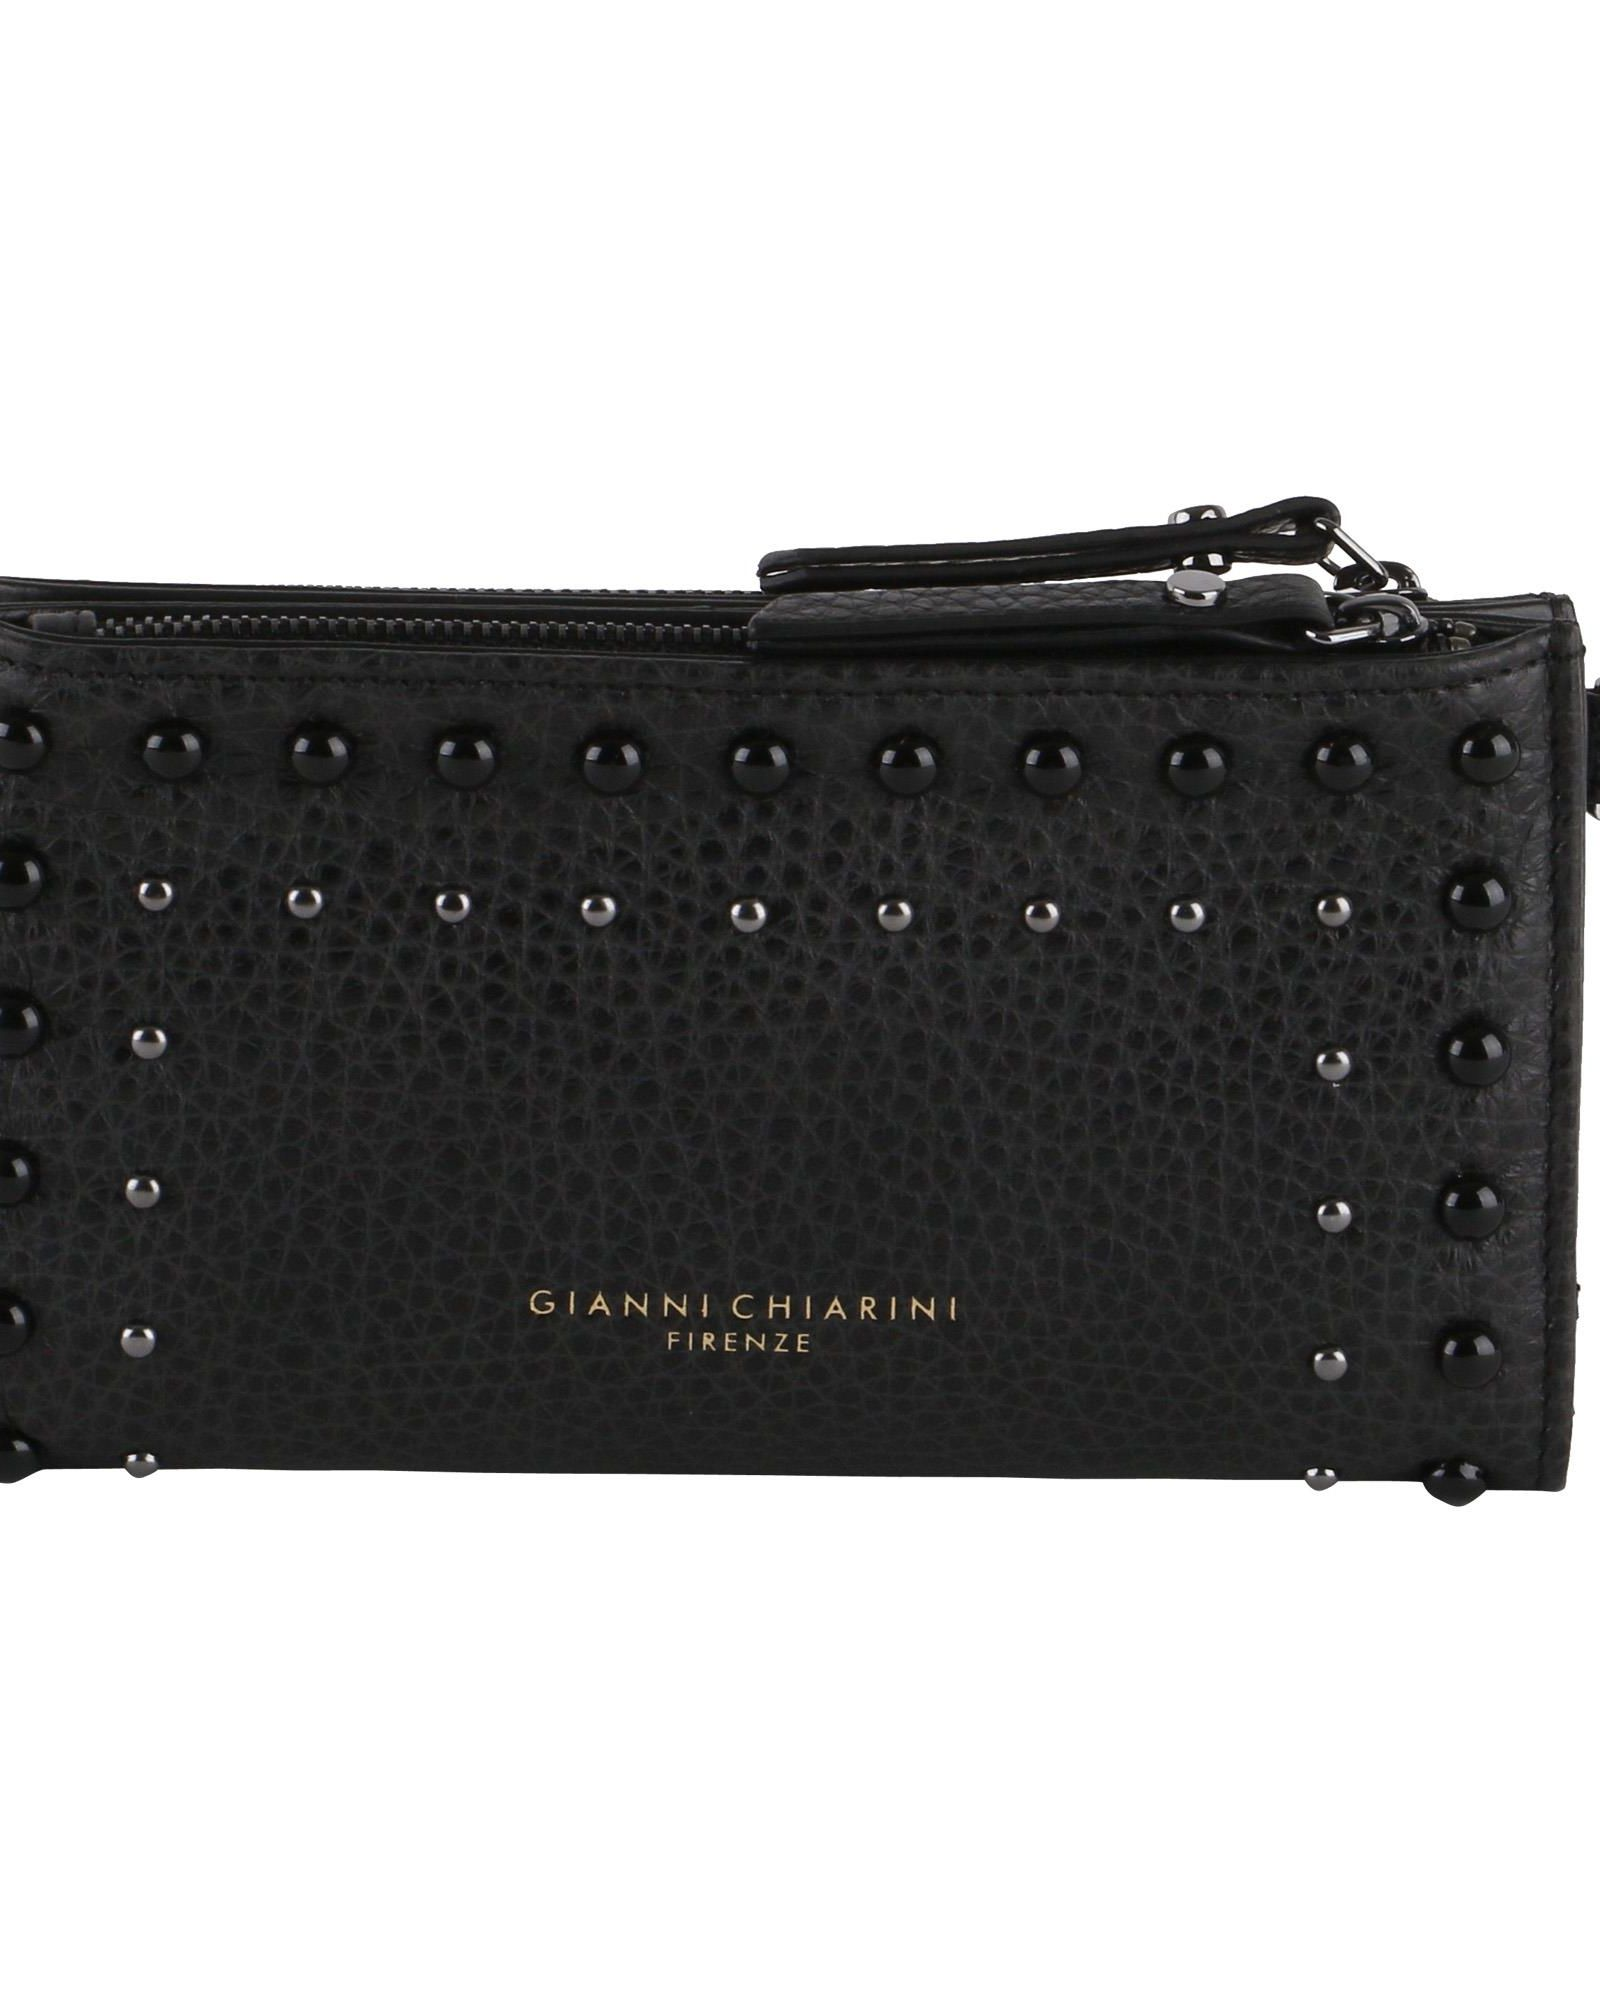 GIANNI CHIARINI Grained Leather Wallet in Black